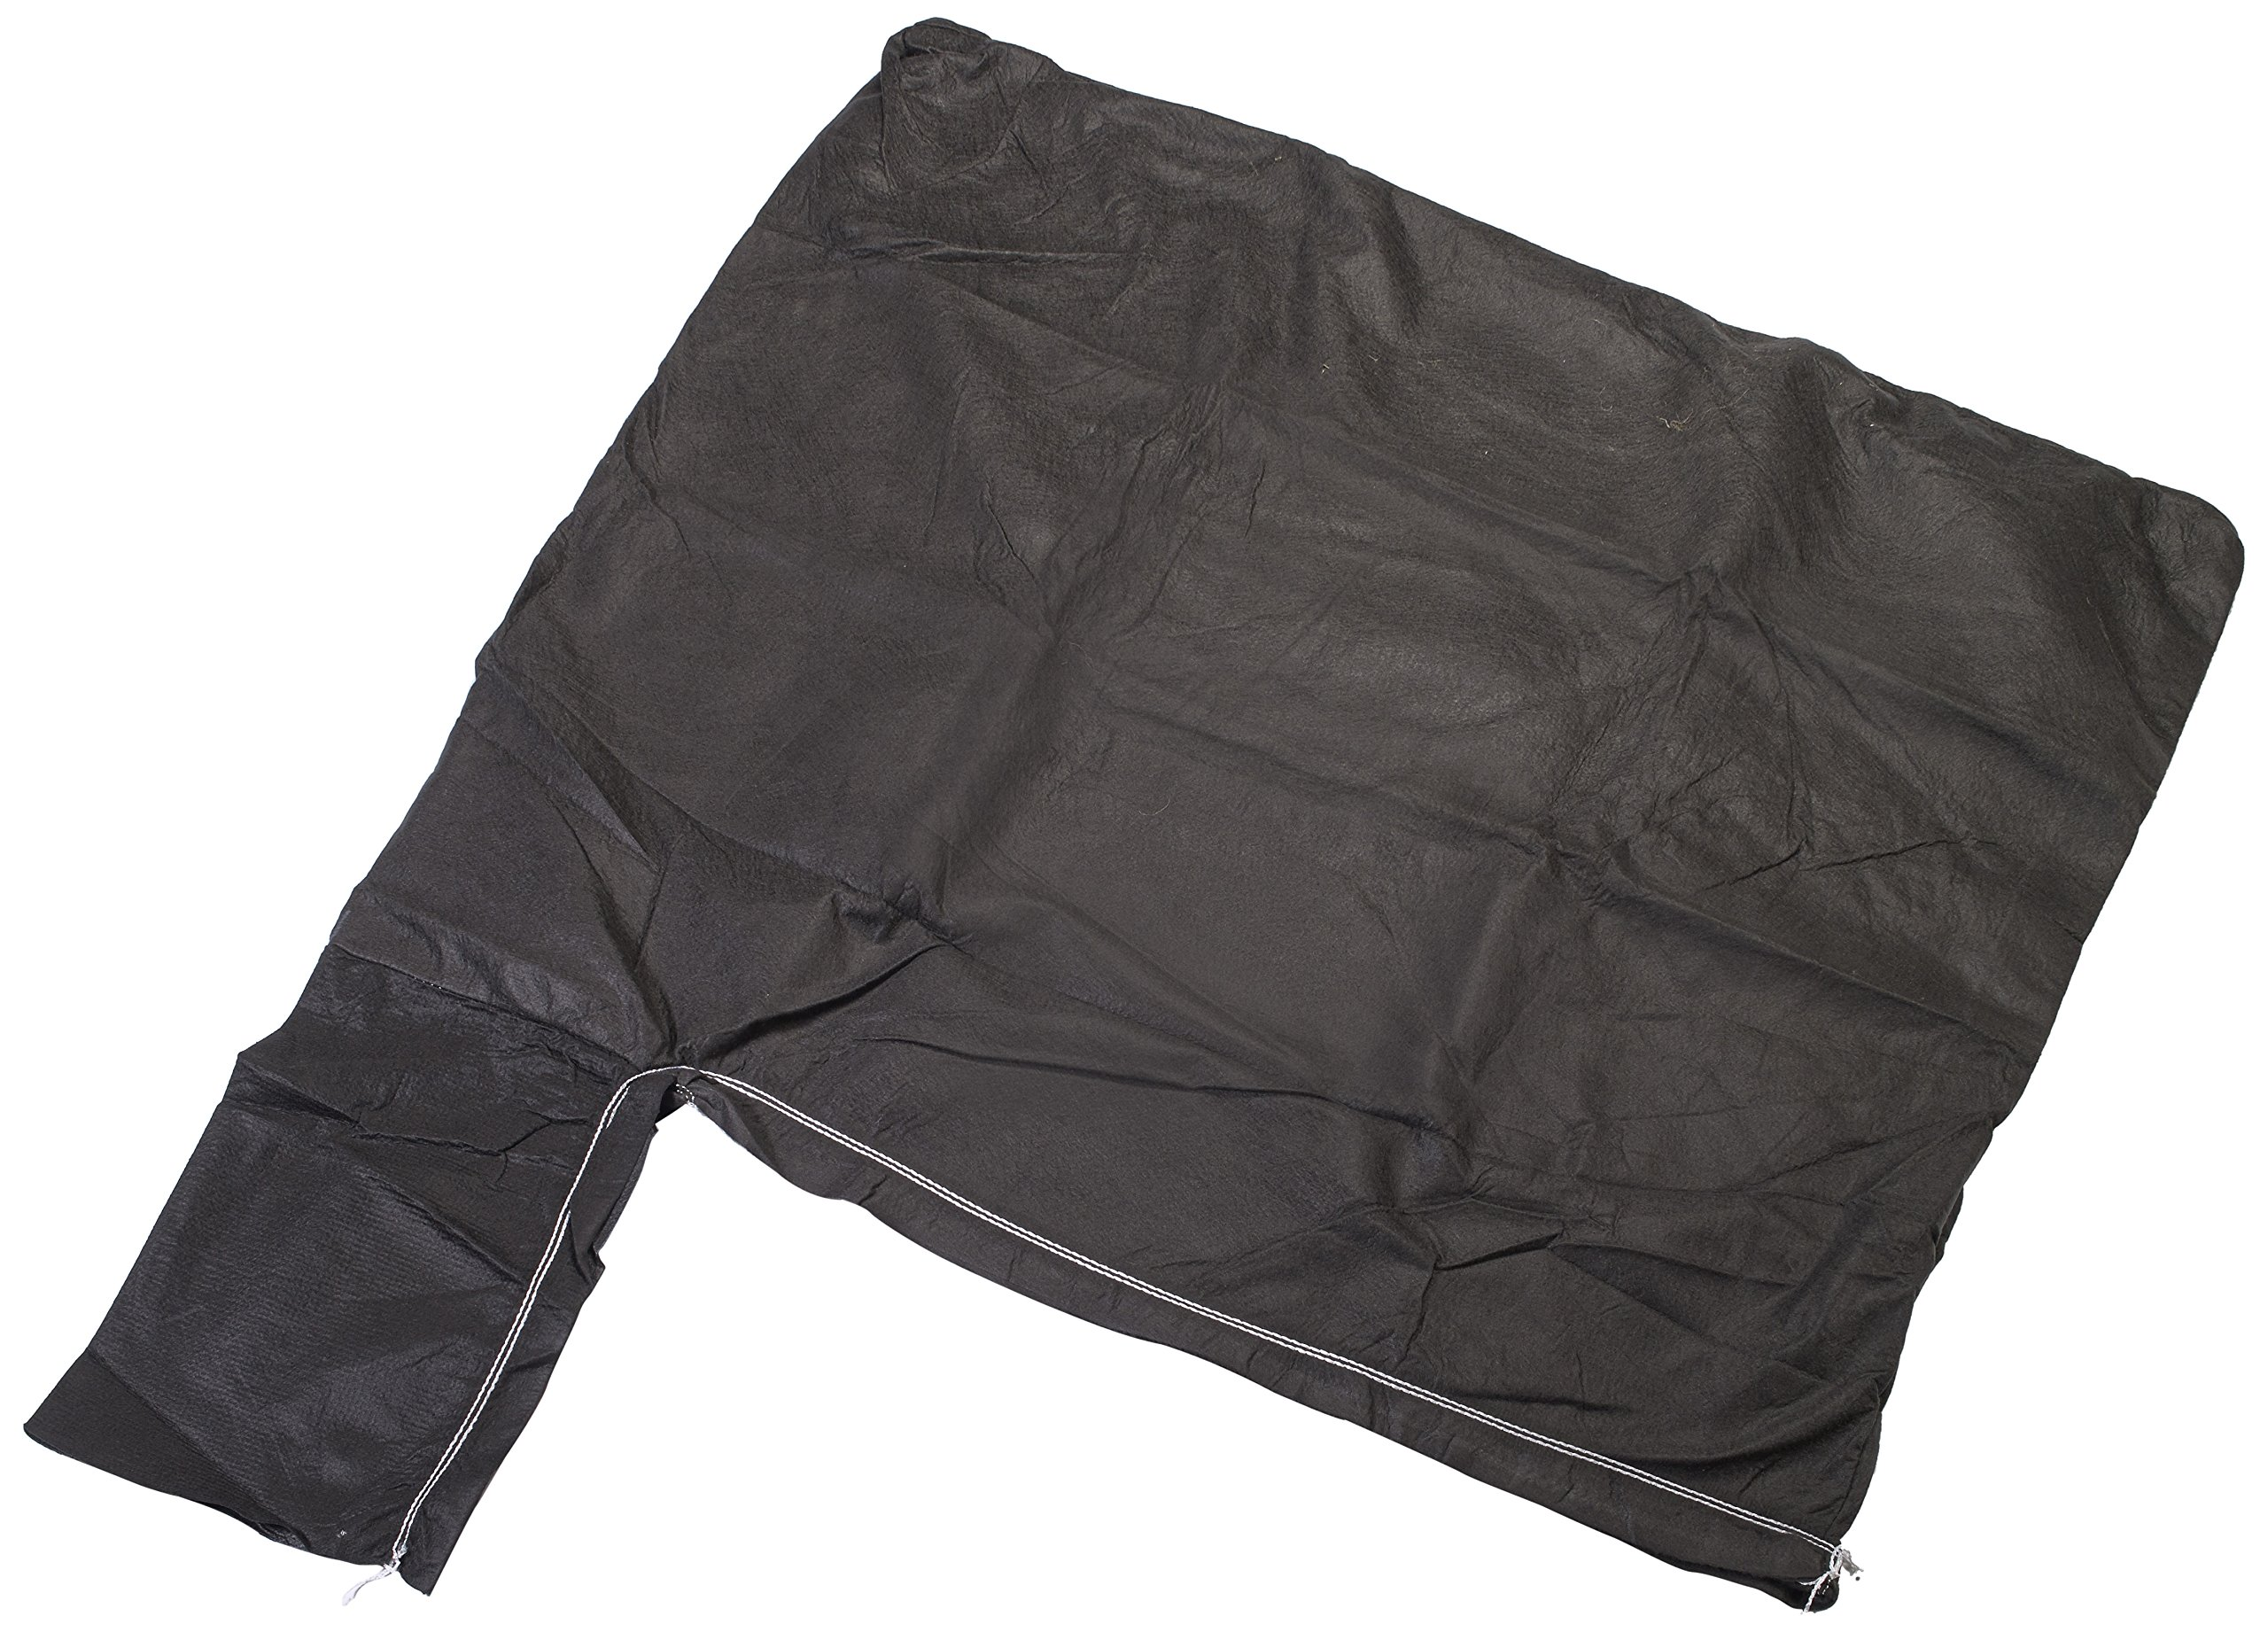 Mutual 15925 8 oz Non Woven Geotextile Disposal Sediment Filter Wetland Bag, 6' Length x 5' Width by Mutual Industries